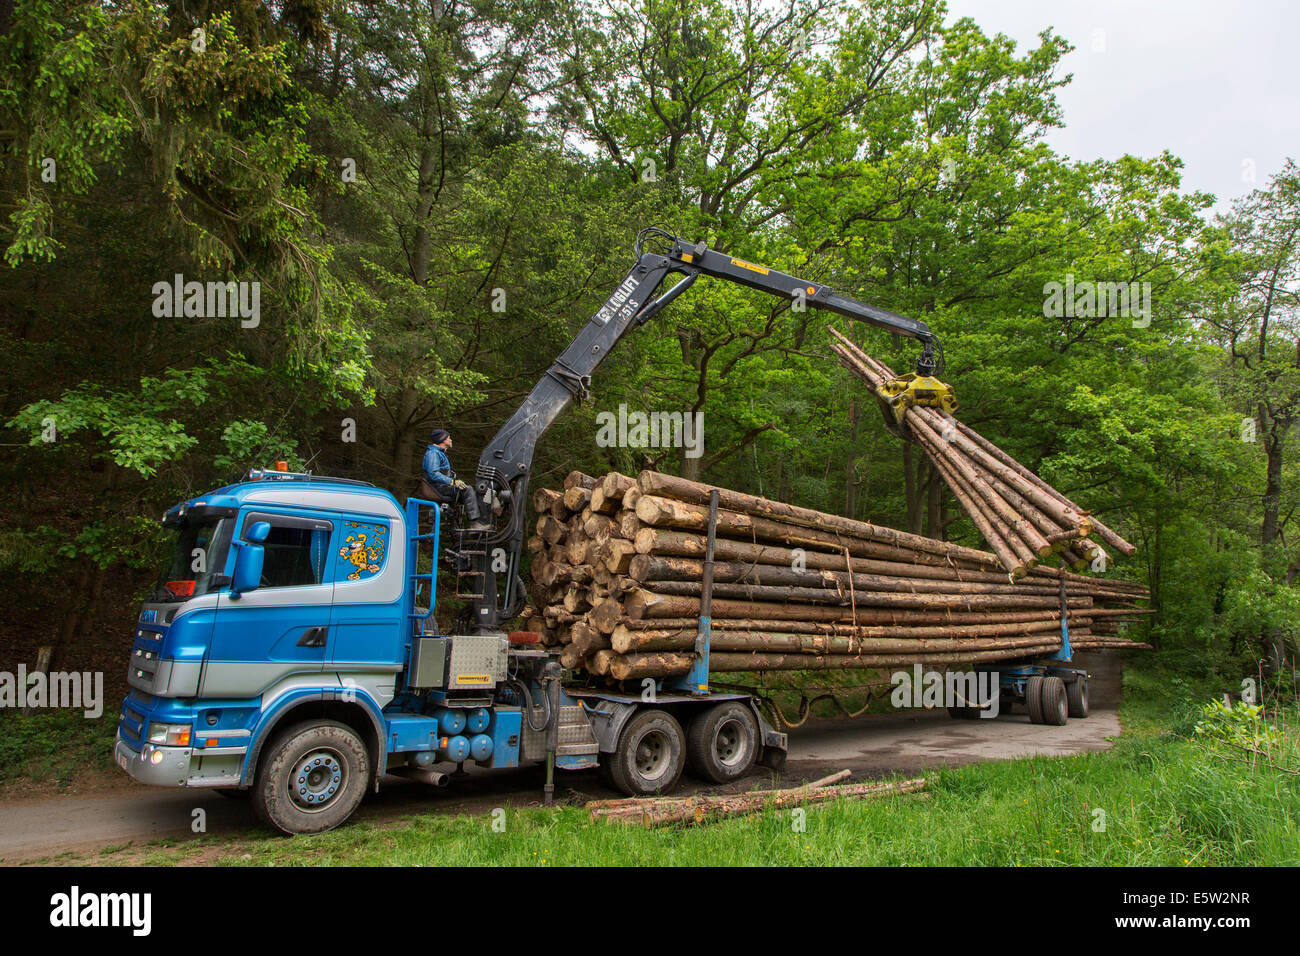 Forester loading felled tree trunks on logging truck with hydraulic crane / loglift in forest - Stock Image